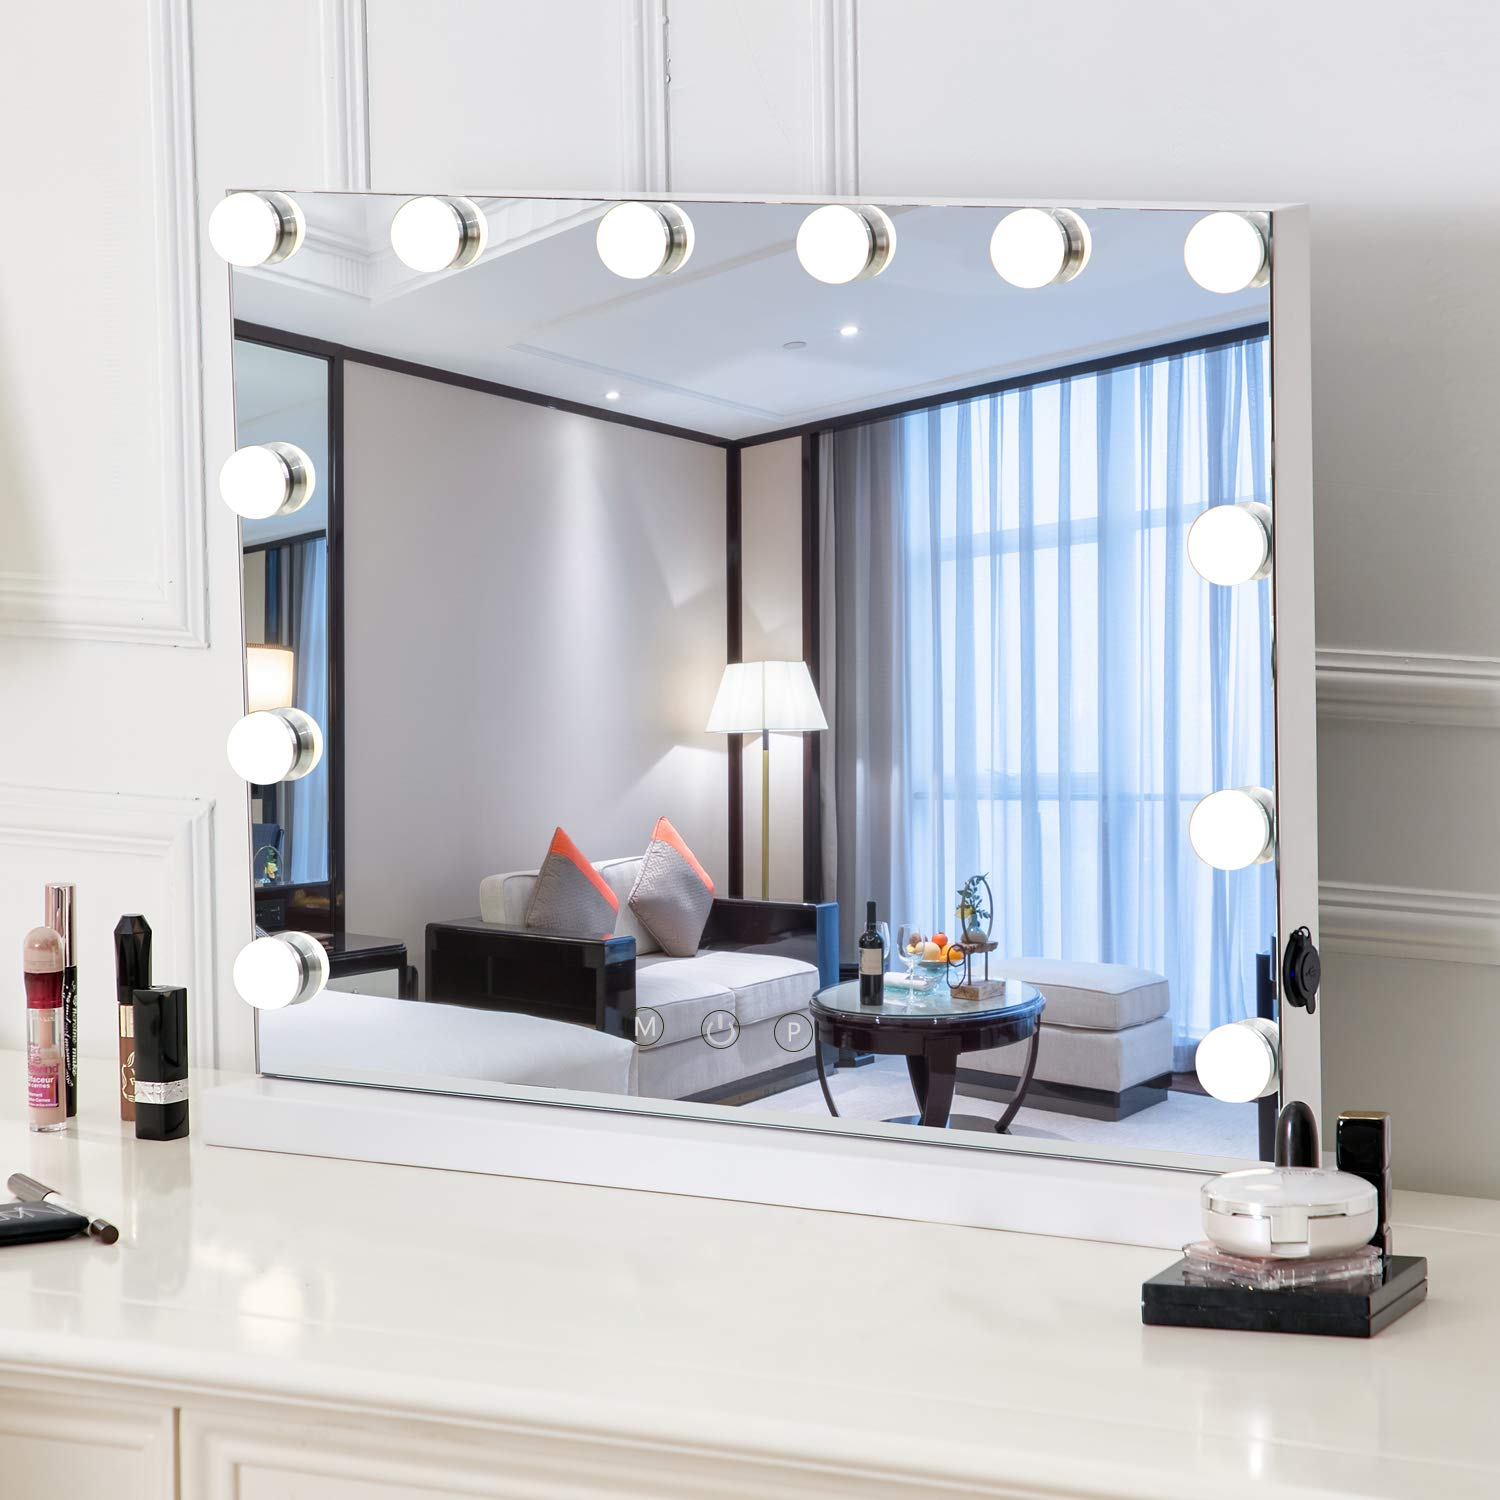 HOMPEN Lighted Vanity Mirror with Light, Lighted Makeup Mirror with LED Dimmable Bulbs-White by HOMPEN